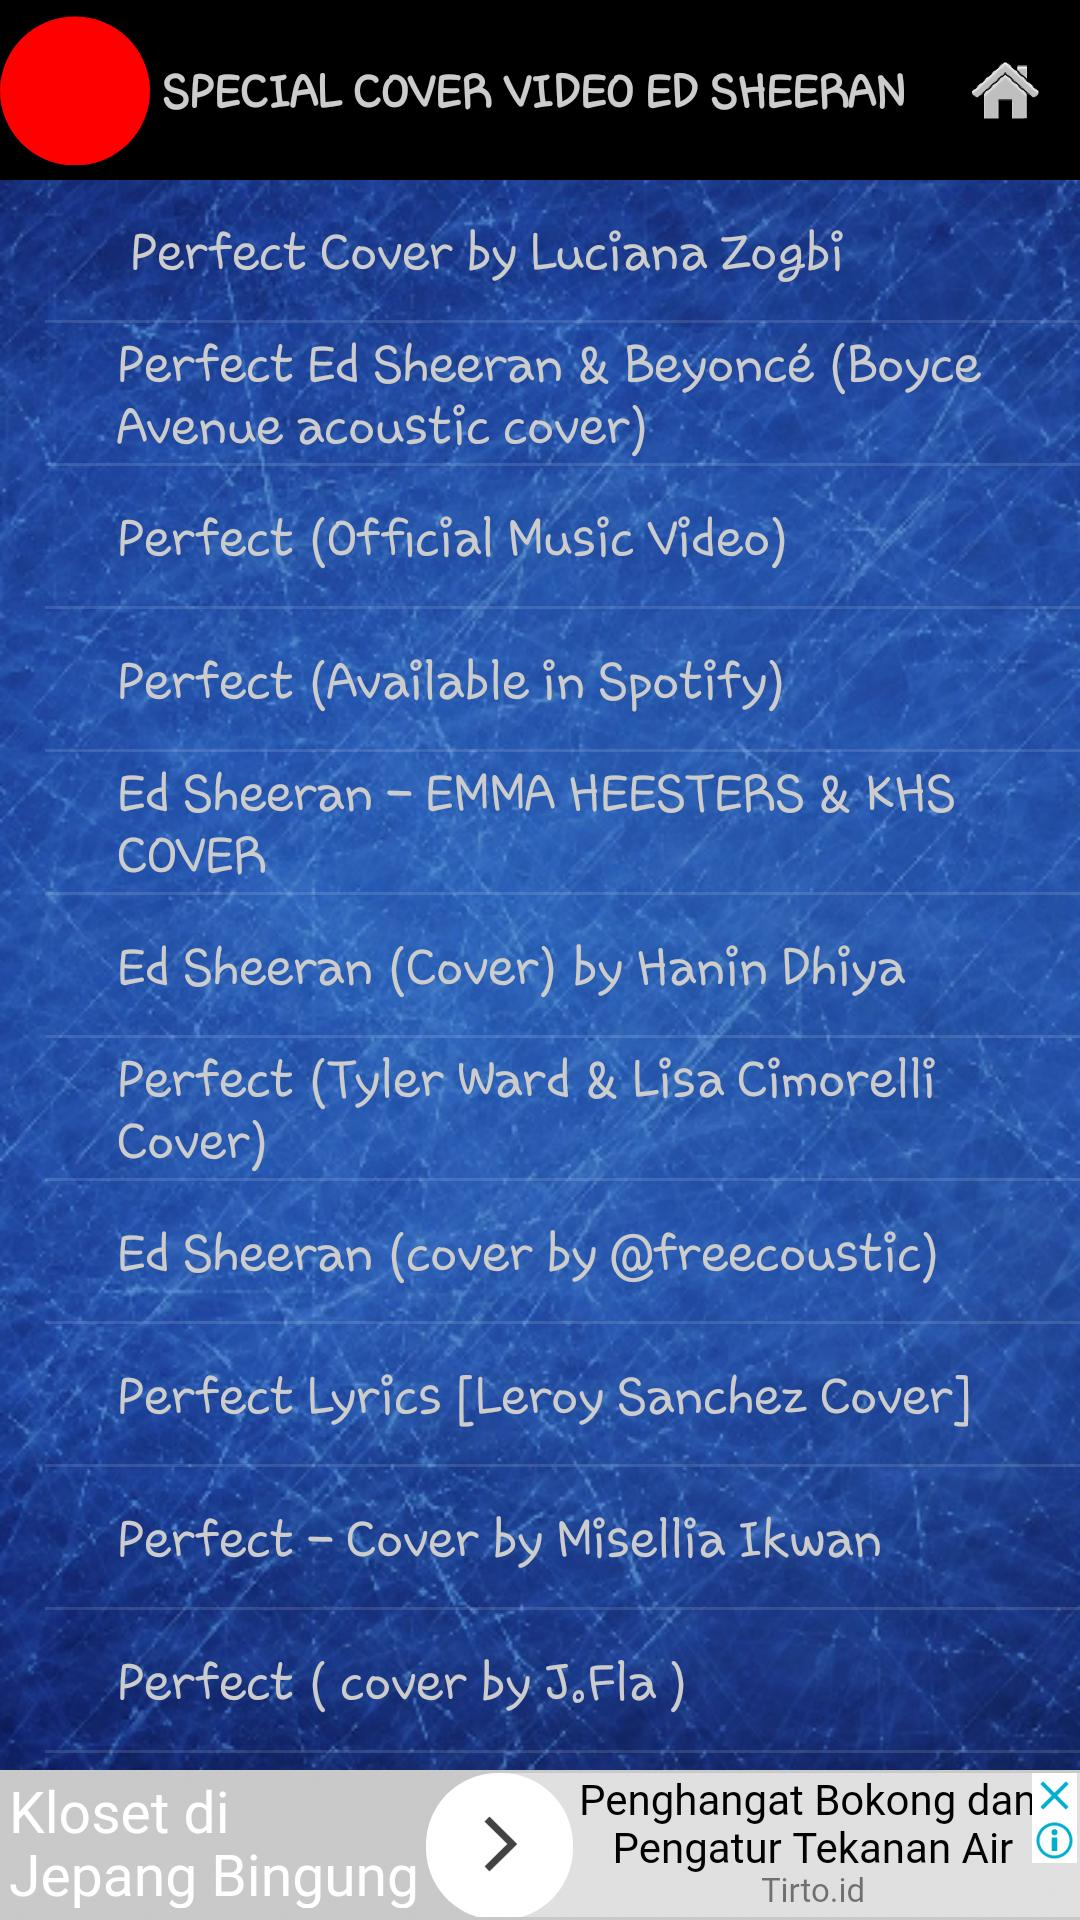 COVER VIDEO MUSIC ED SHEERAN (Perfect) for Android - APK